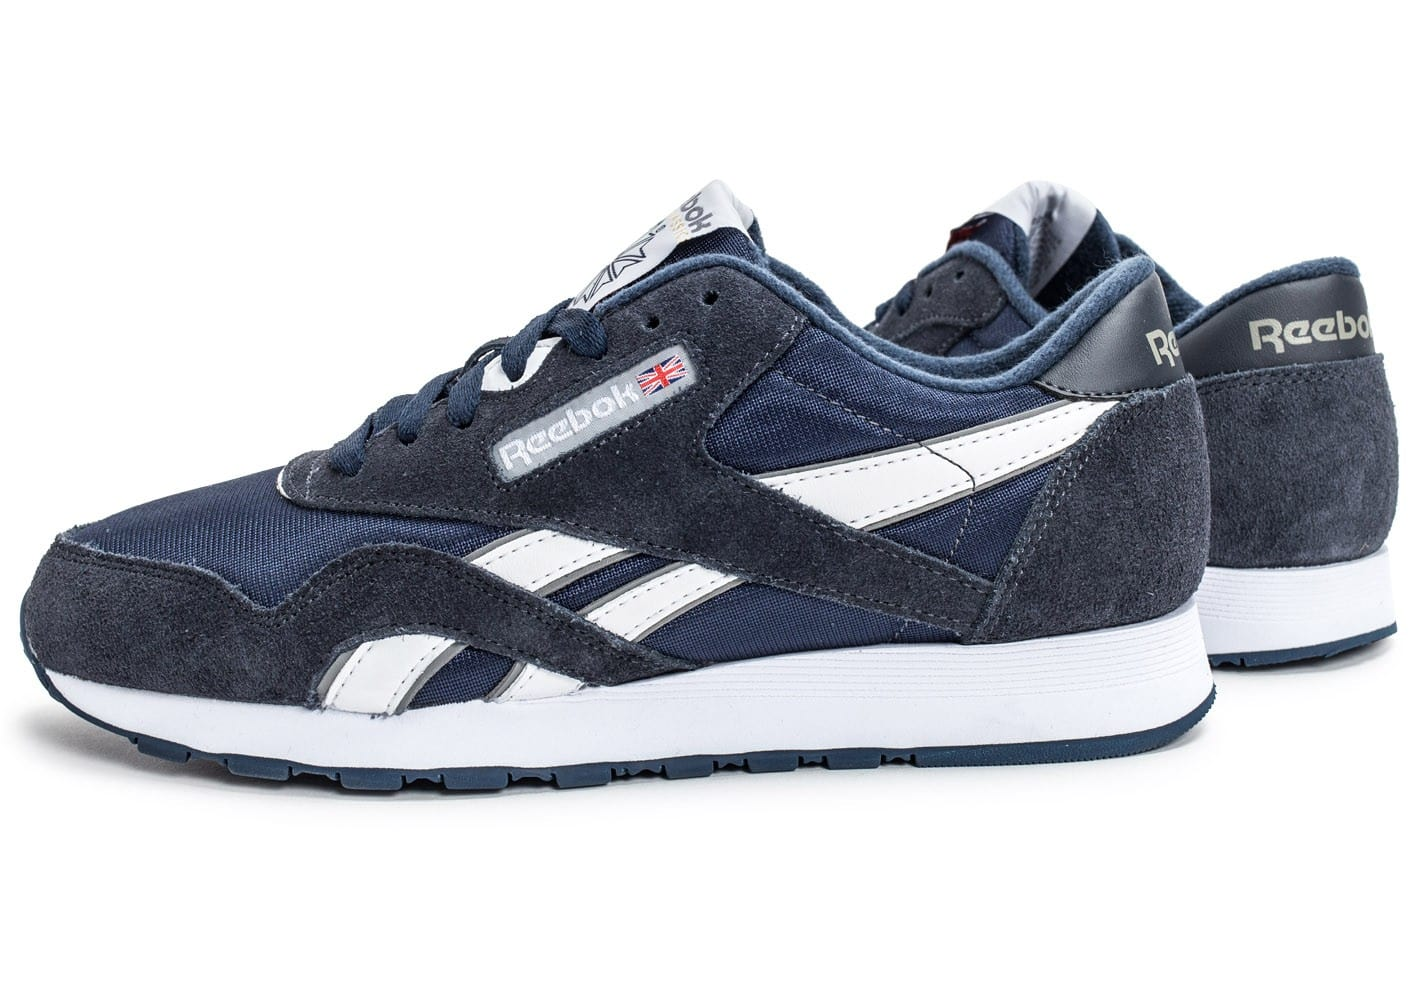 fashion style quite nice online store Reebok Classic Nylon bleu marine - Chaussures Baskets homme ...